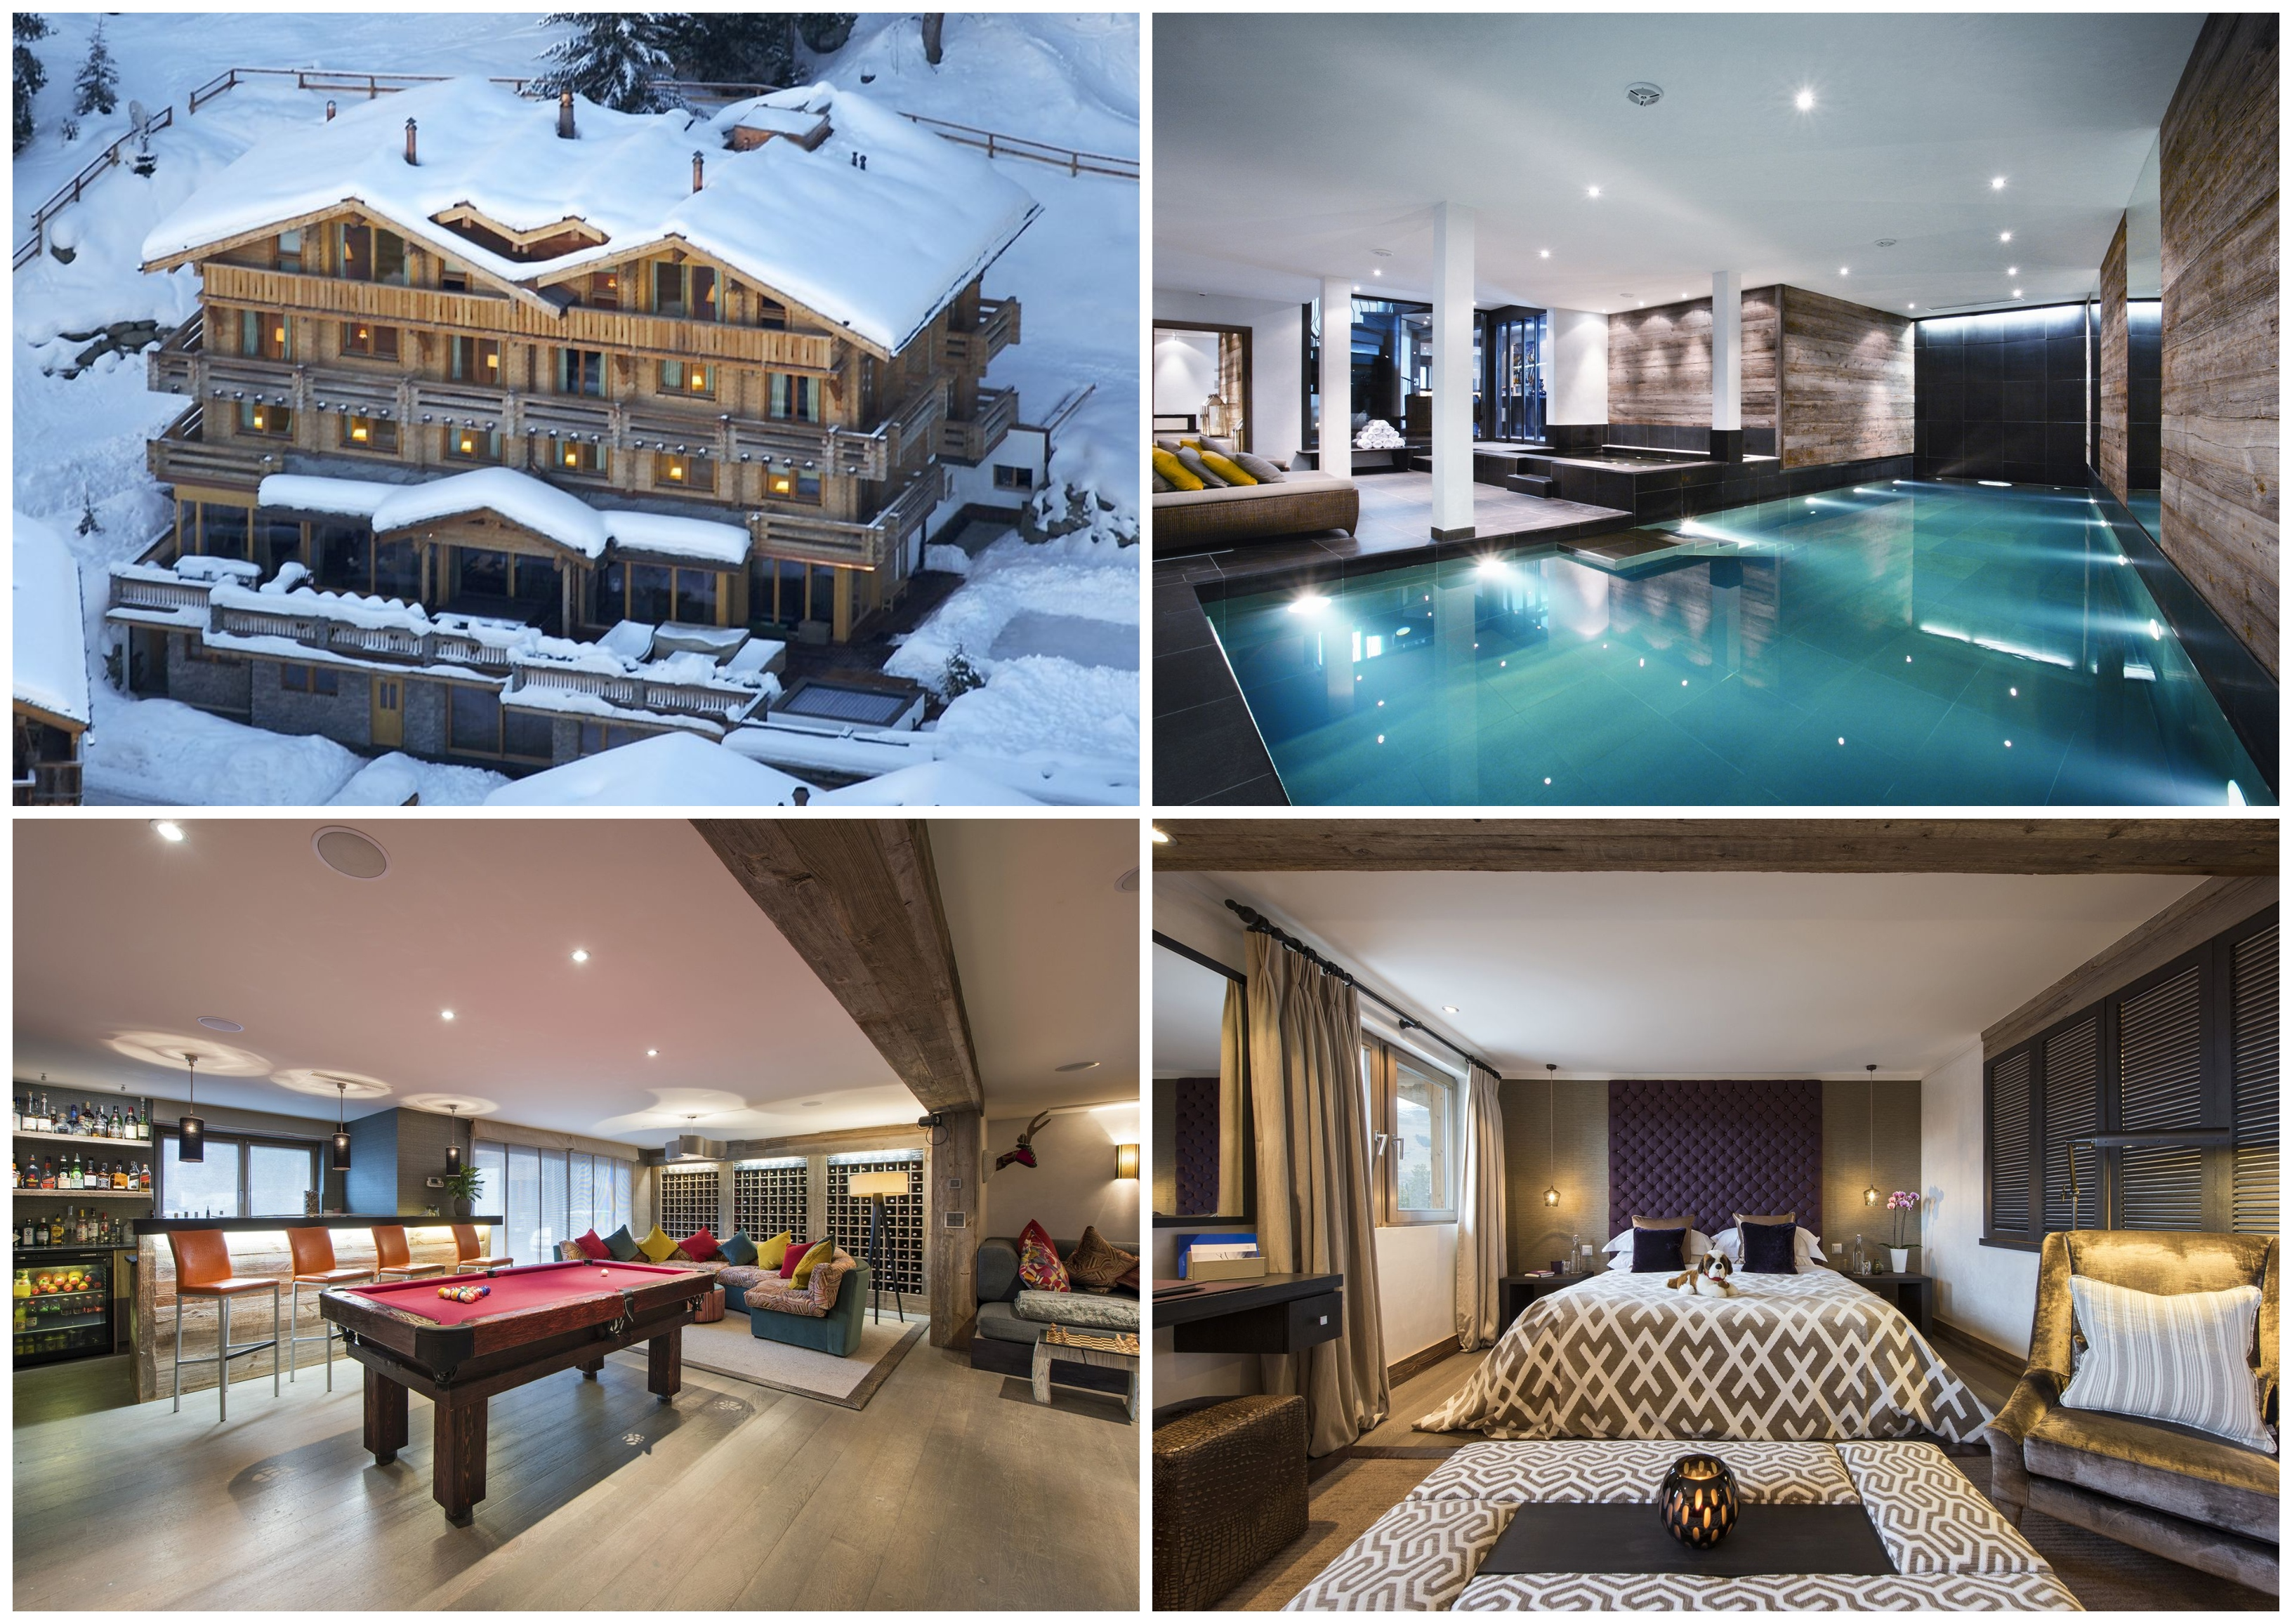 Wedding at The Lodge, wedding in the Alps, luxury chalet for a wedding